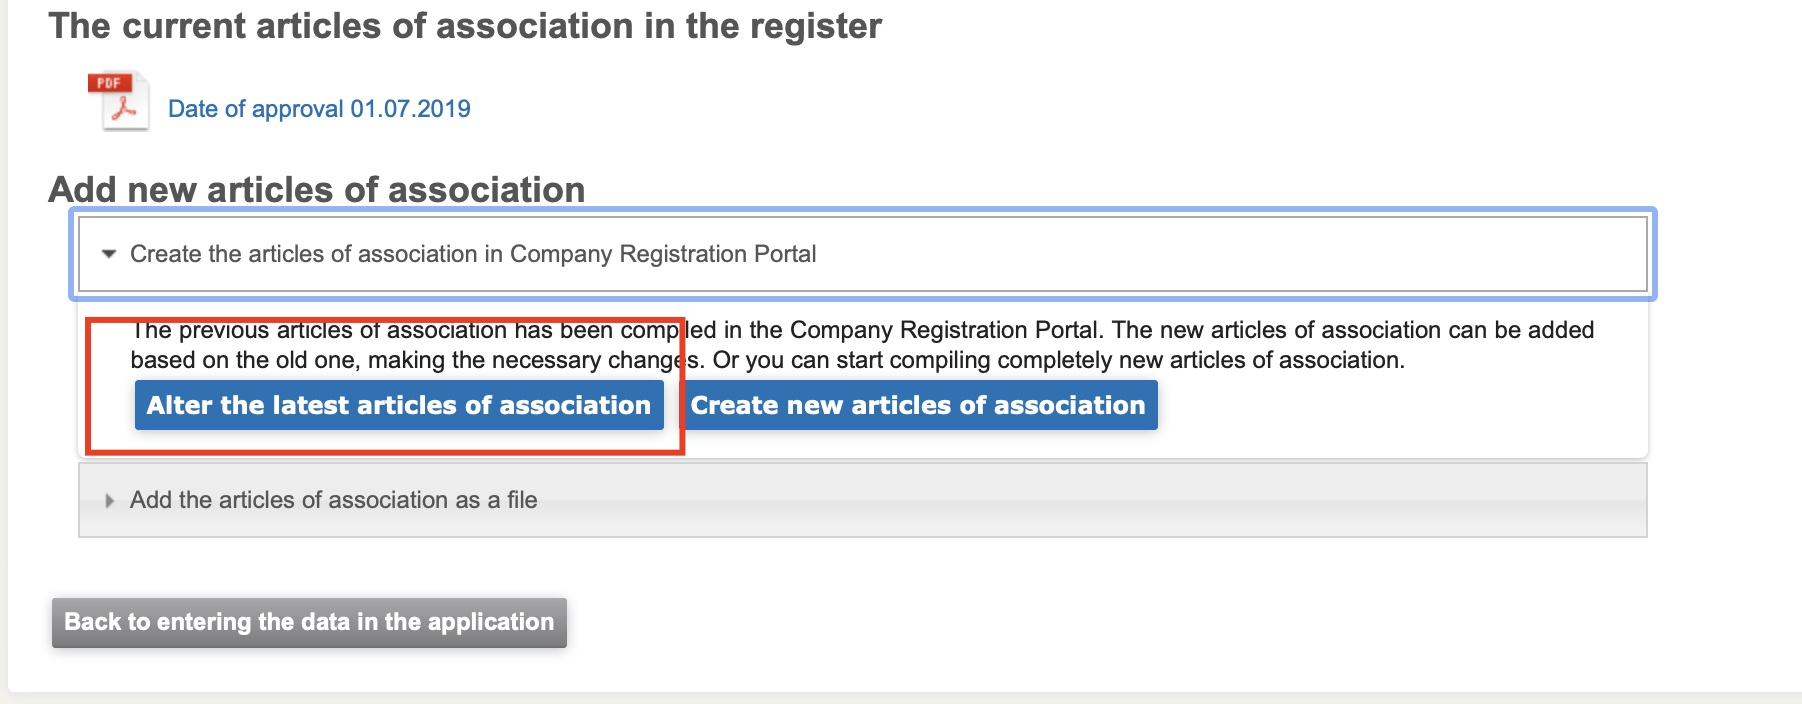 change the name of your company, How to change the name of your company in the Business Registry